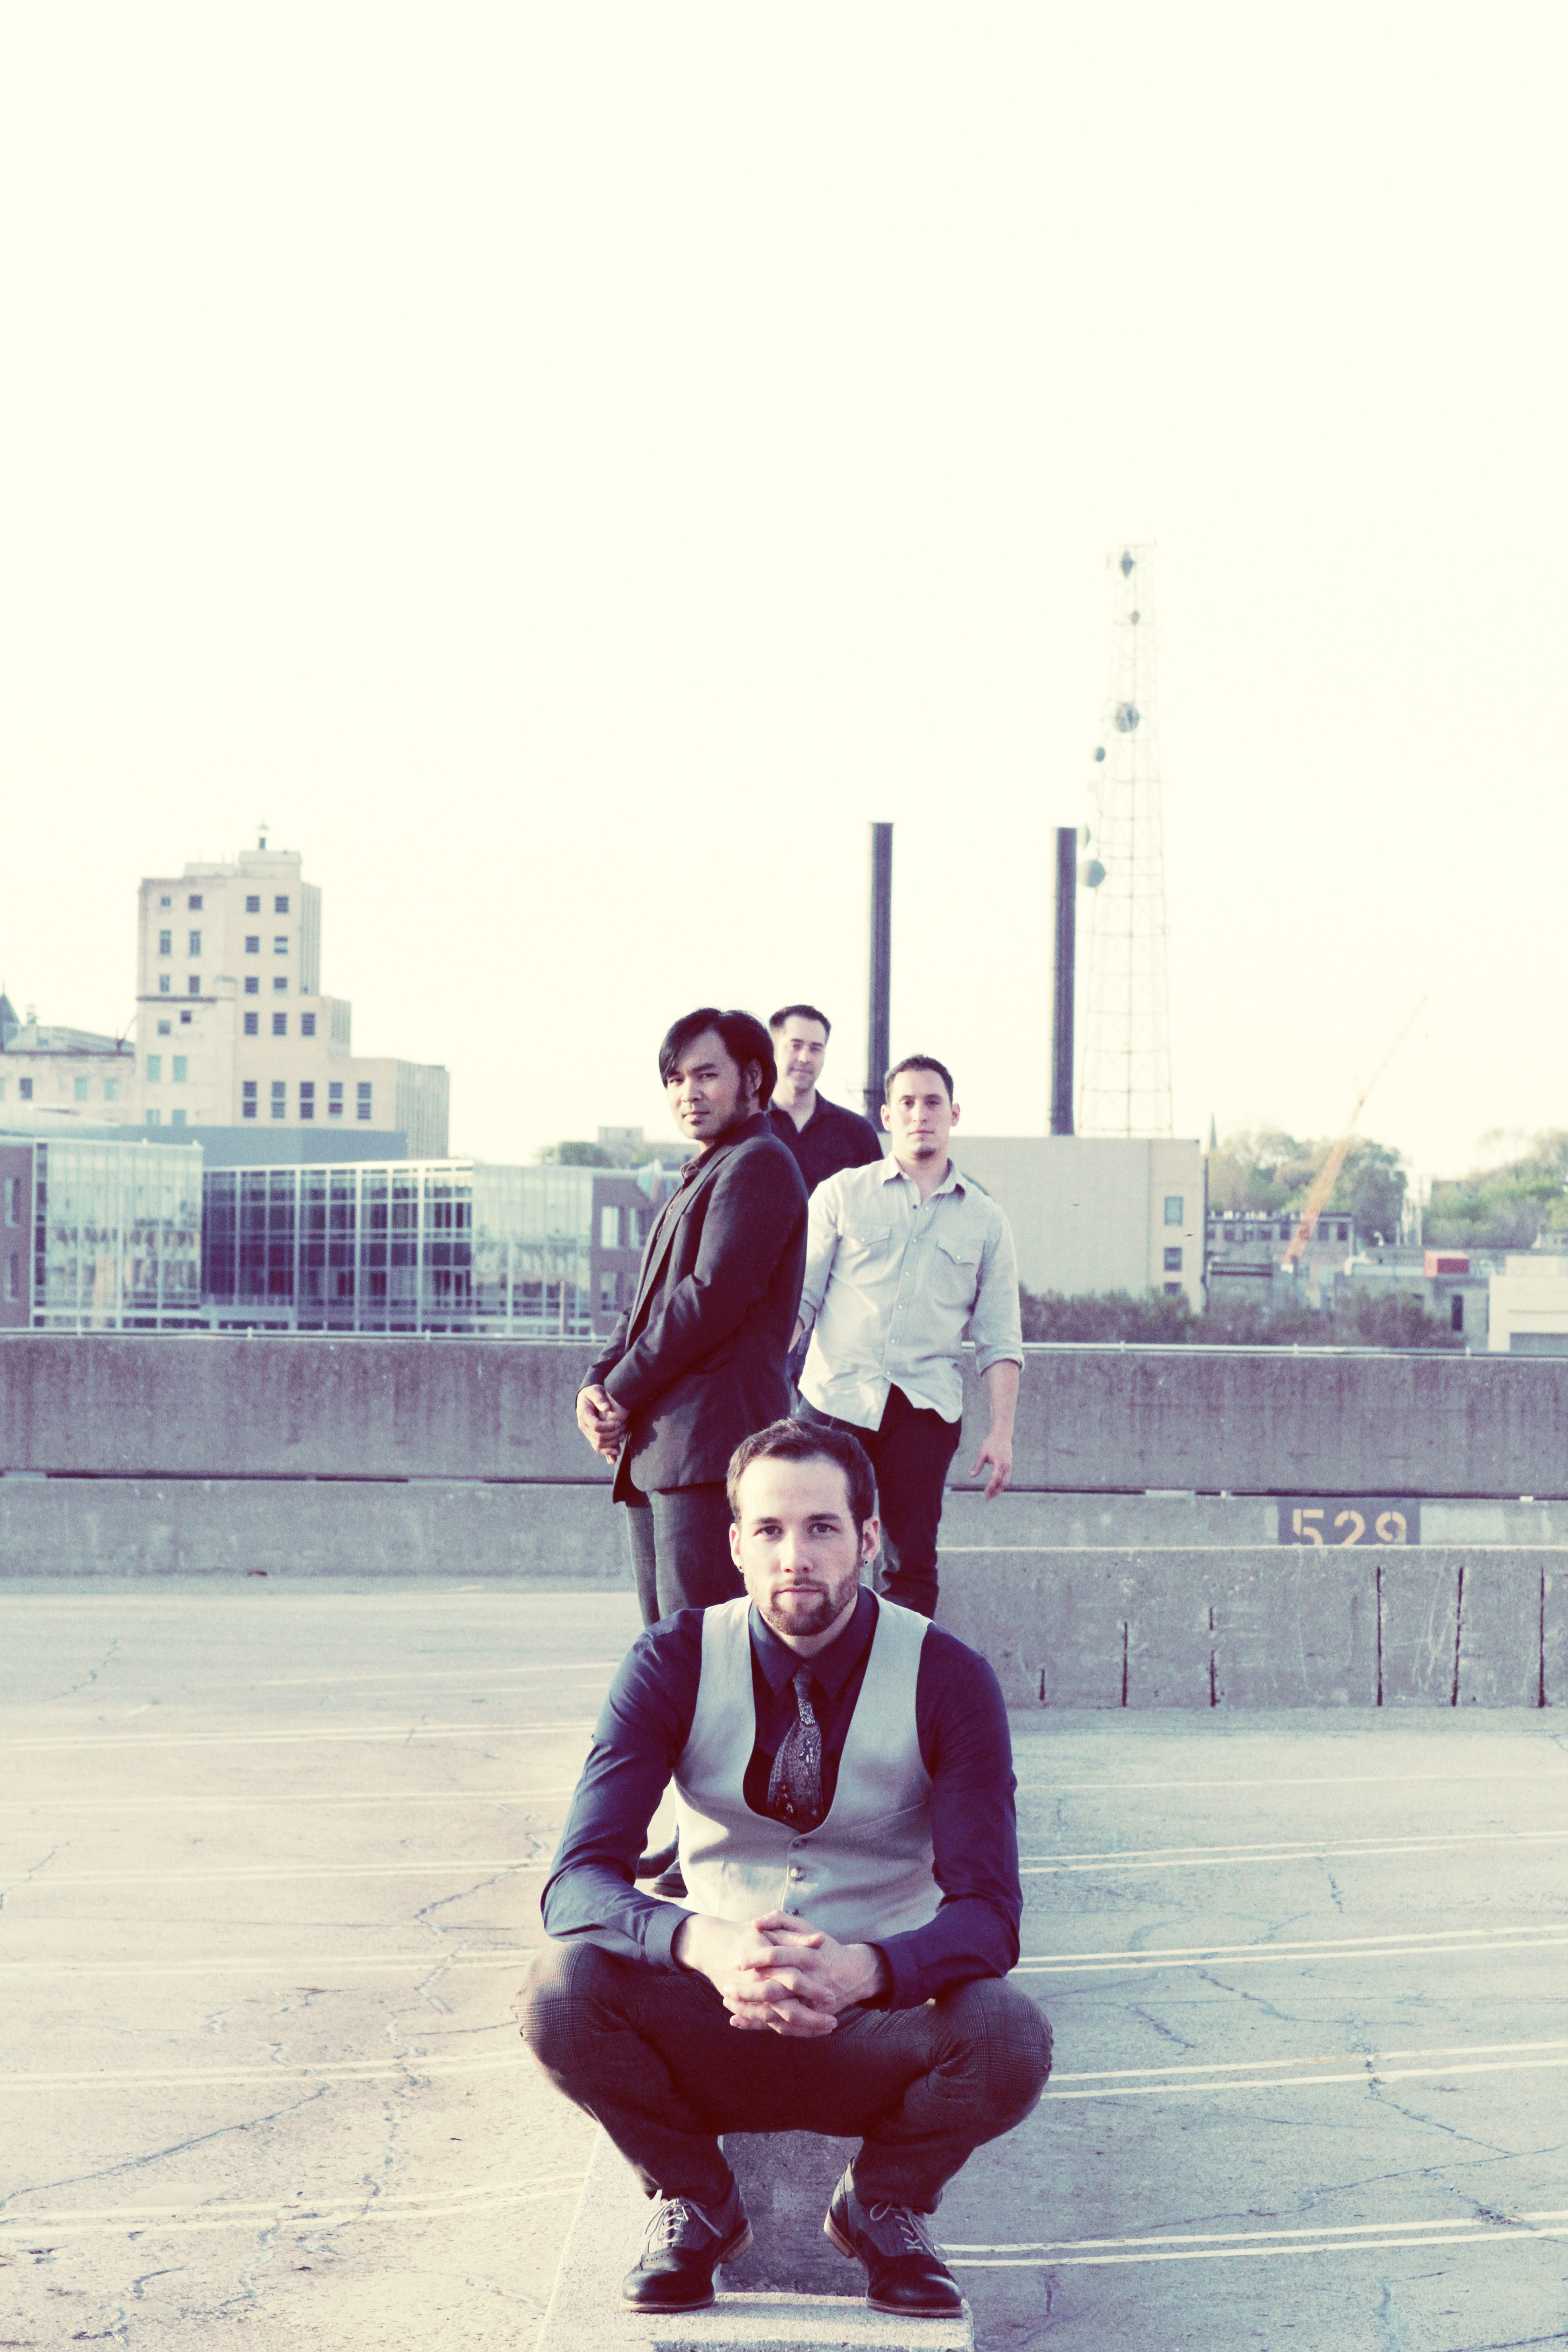 I'm Not A Pilot, a classical crossover band from Milwaukee, began to take shape in 2007. Photo by Danielle Burren.